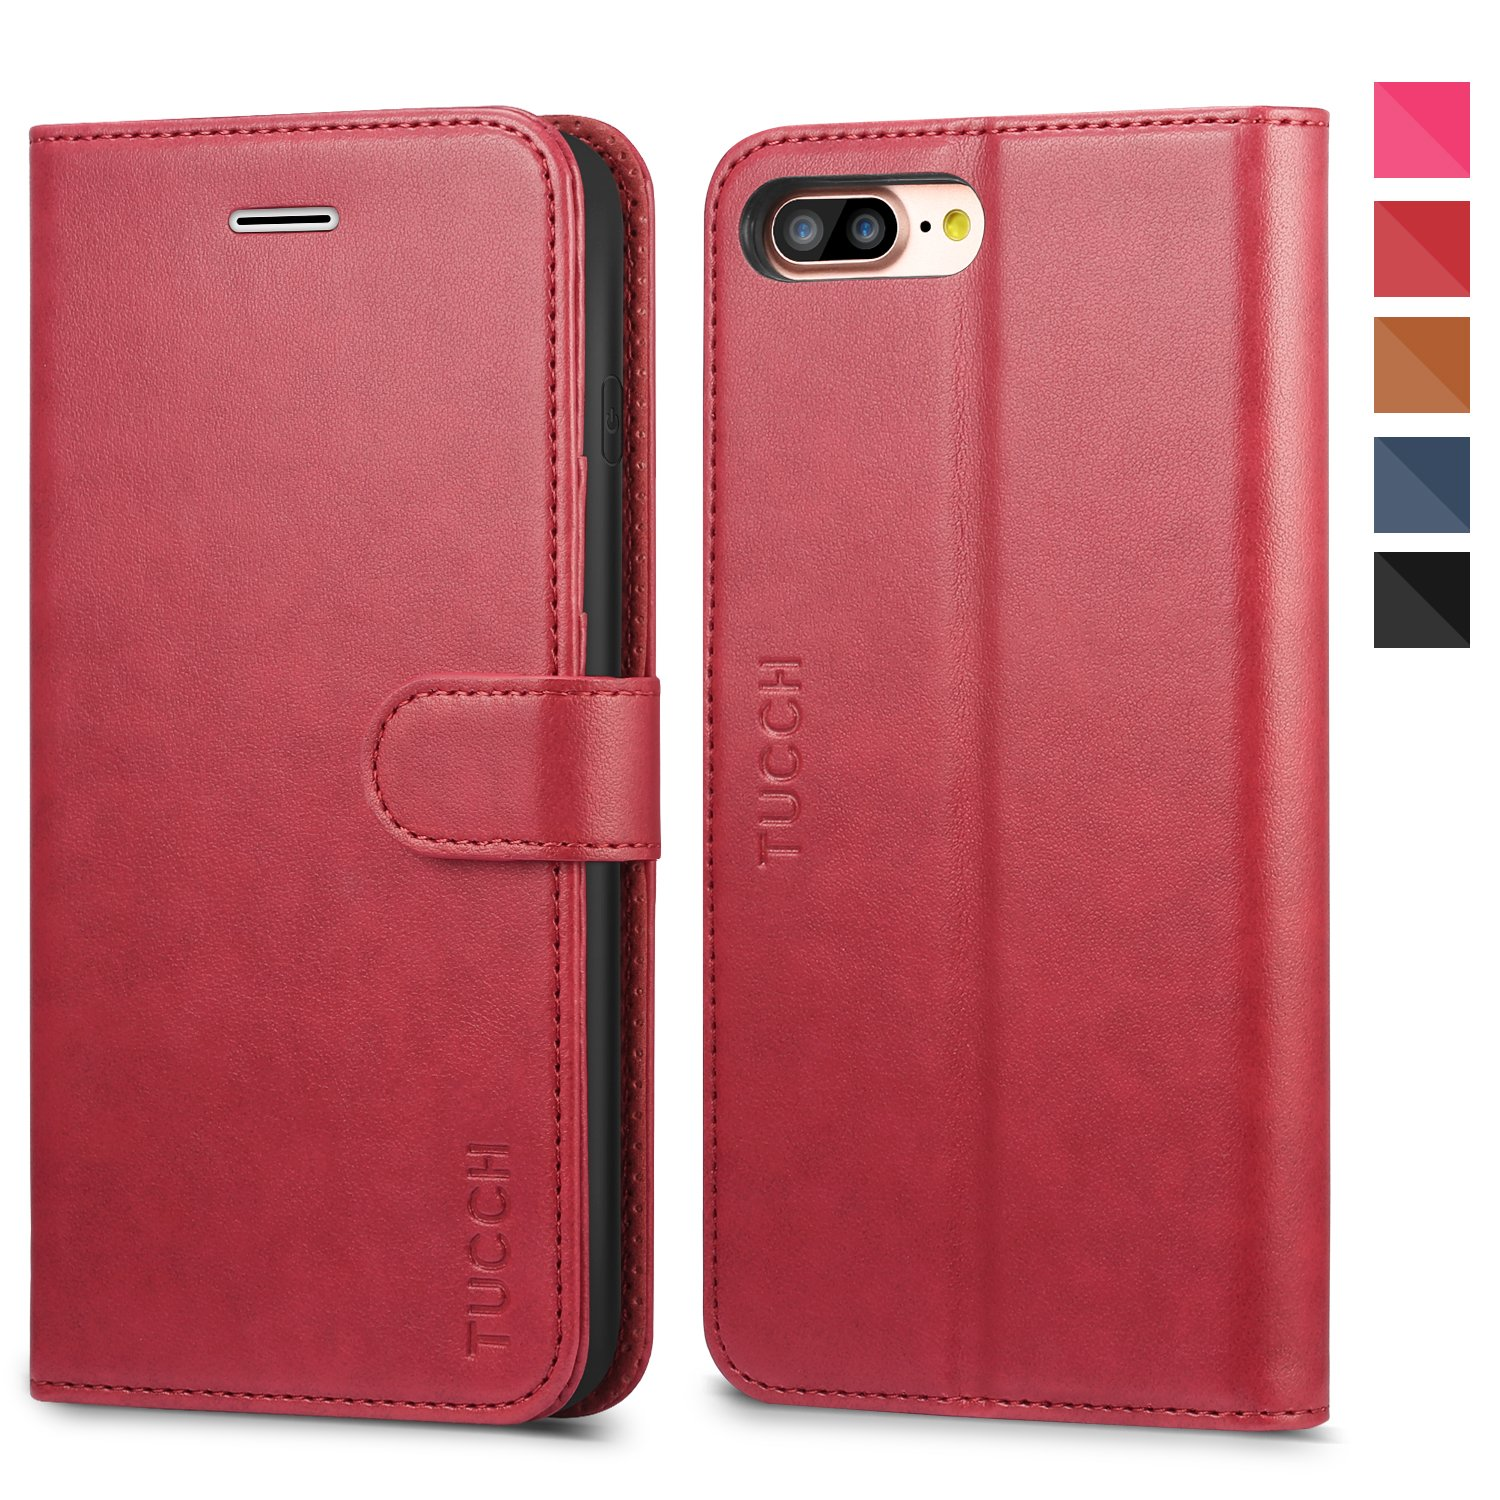 iPhone 8 Plus Case, iPhone 7 Plus Wallet Case, TUCCH Magnetized Closure Card Slots Money Pouch, PU Leather Purse Cover Flip Book [TPU Shockproof Interior Case] for iPhone 8 Plus/7 Plus, Red